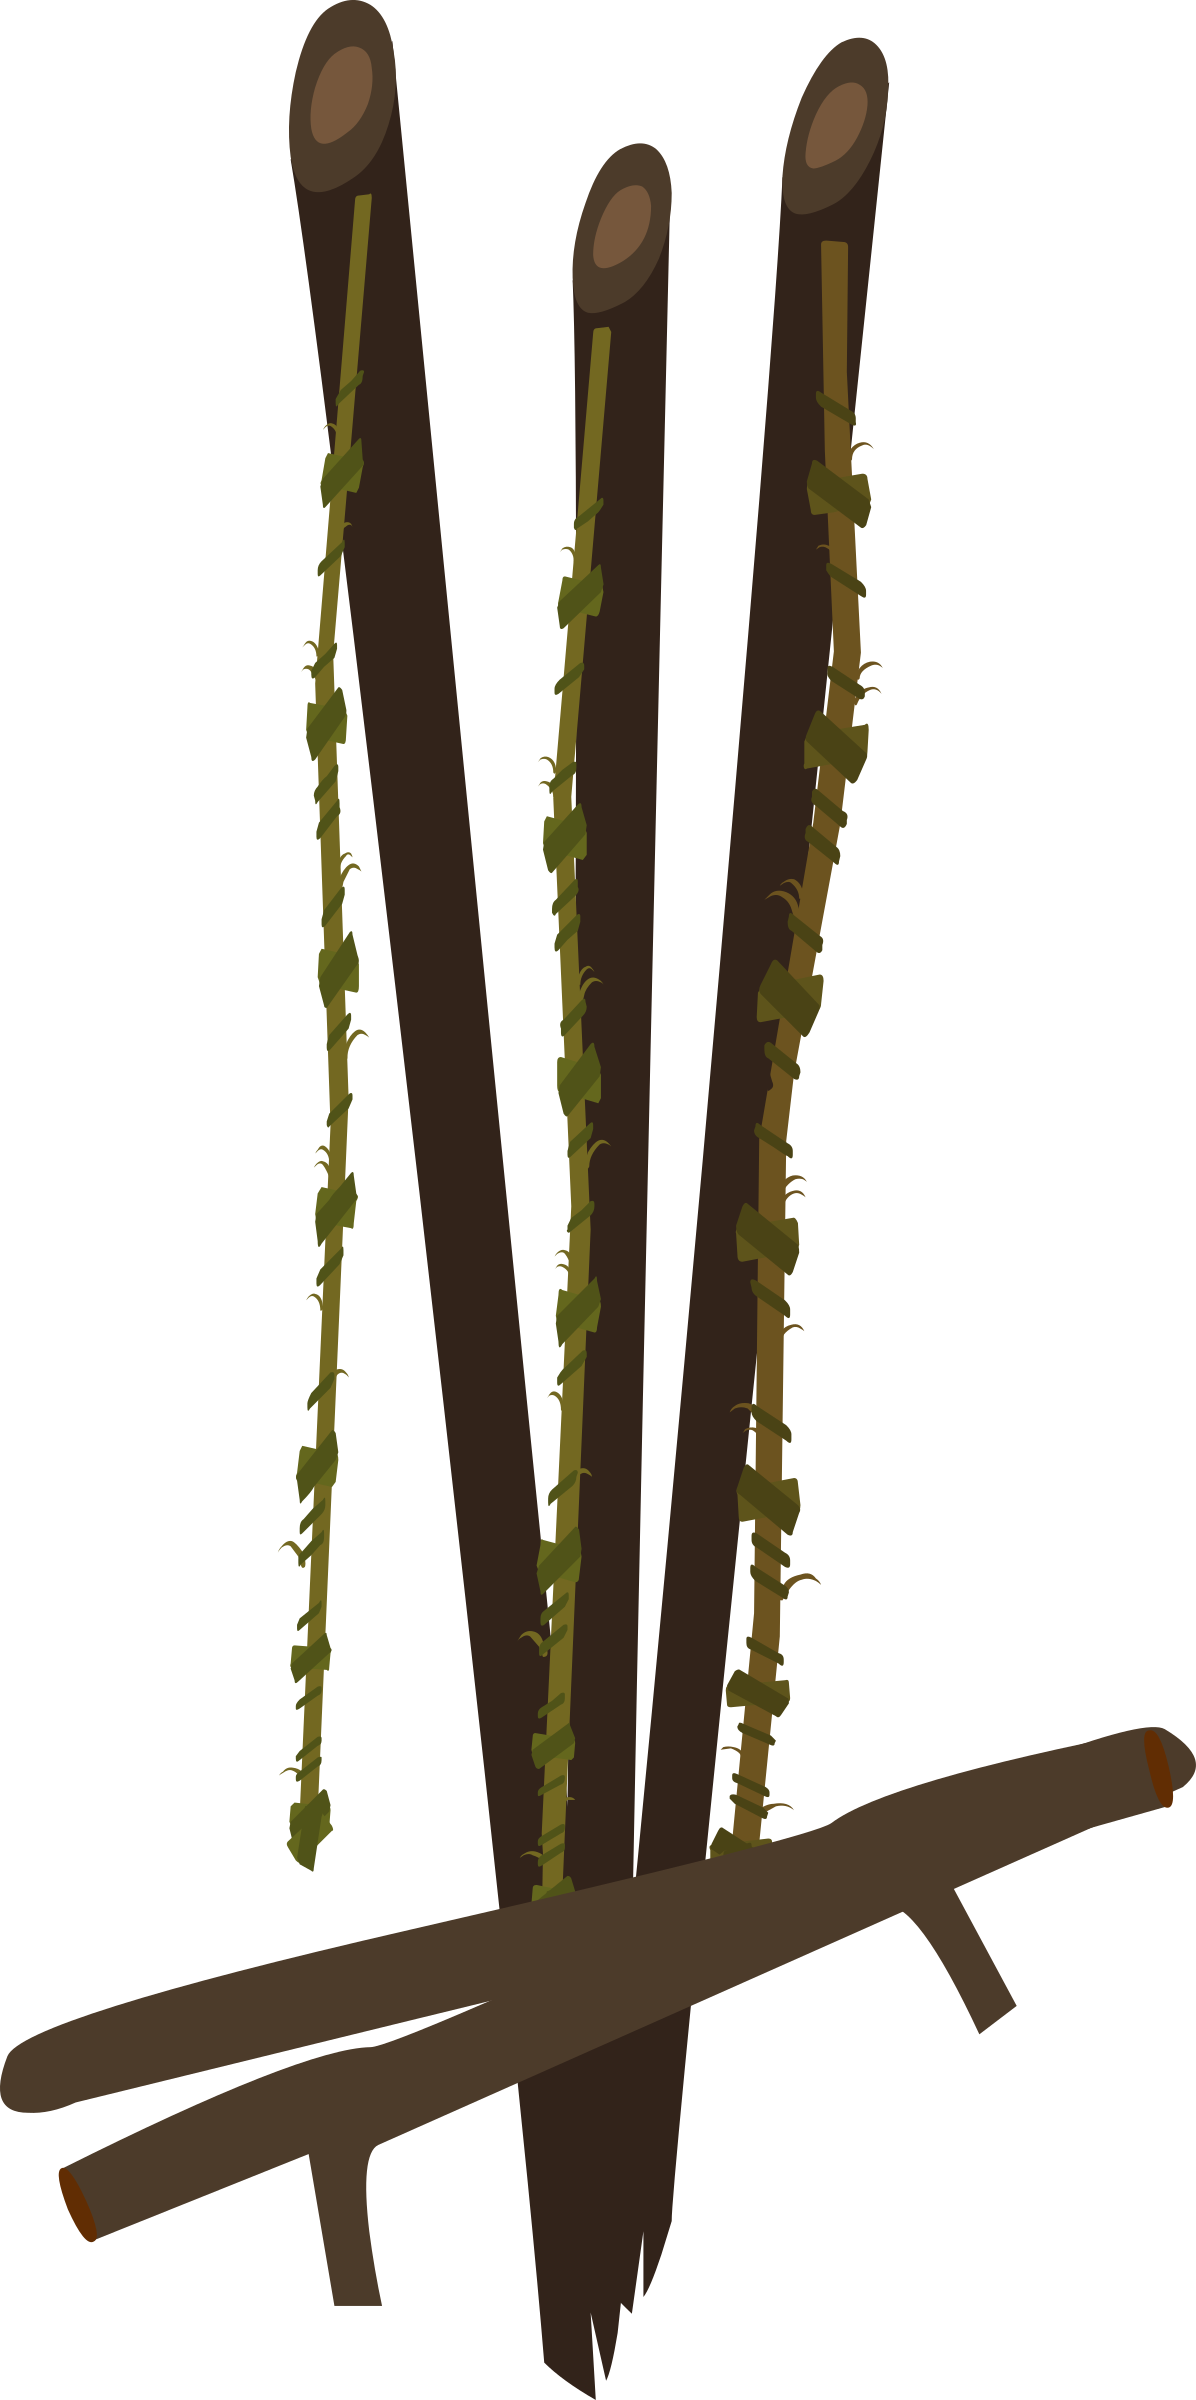 Firebog Fishing Rods by glitch